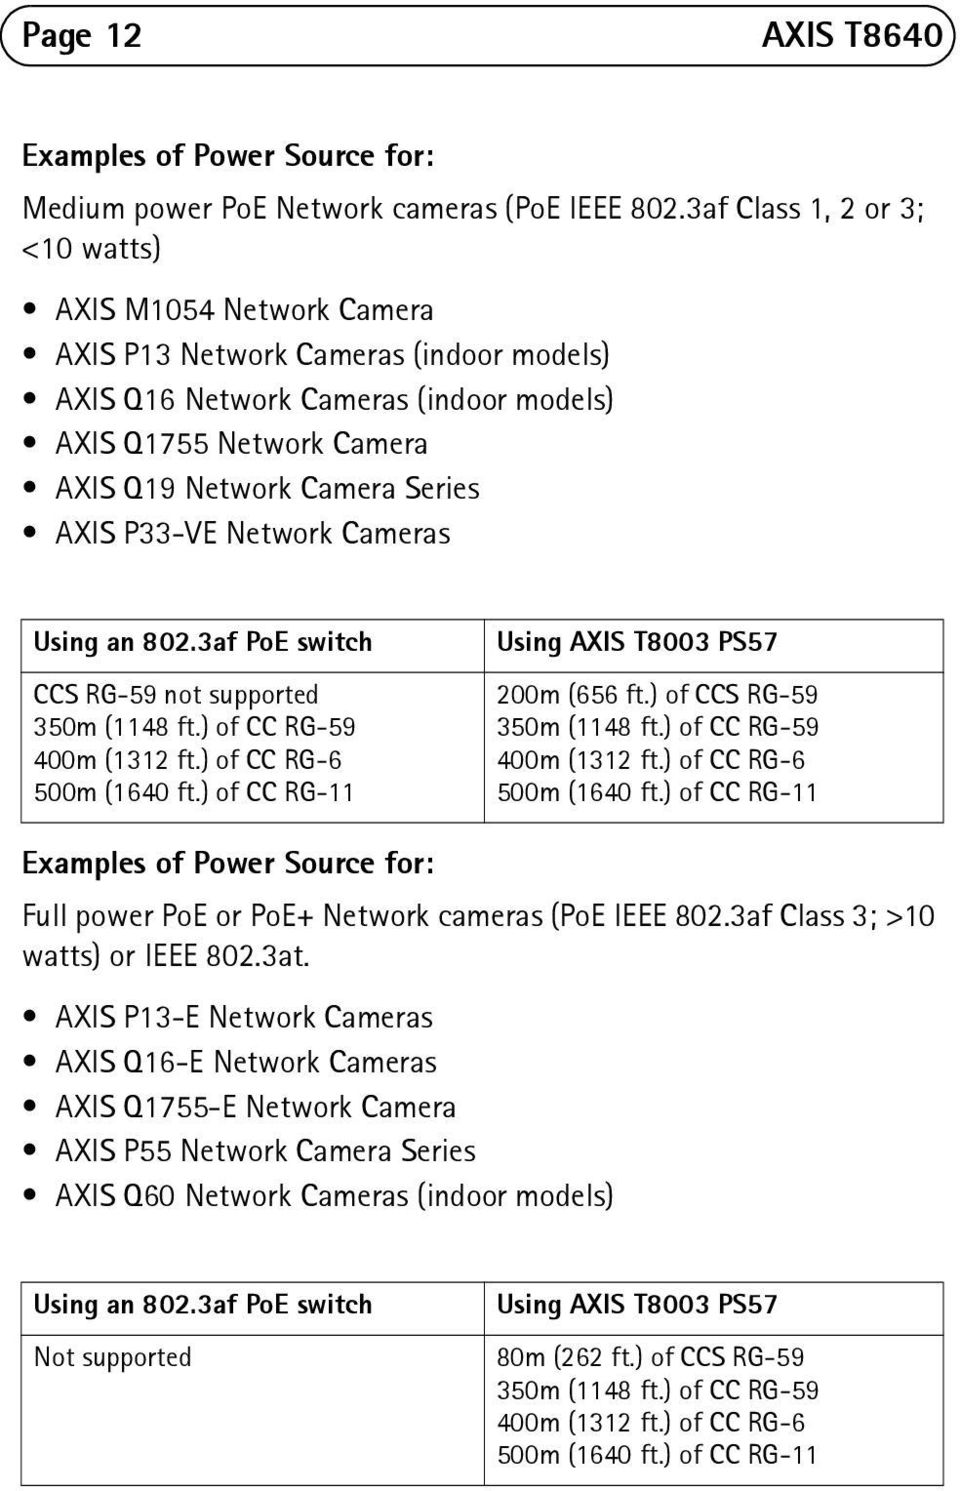 AXIS P33-VE Network Cameras Using an 802.3af PoE switch CCS RG-59 not supported 350m (1148 ft.) of CC RG-59 400m (1312 ft.) of CC RG-6 500m (1640 ft.) of CC RG-11 Using AXIS T8003 PS57 200m (656 ft.